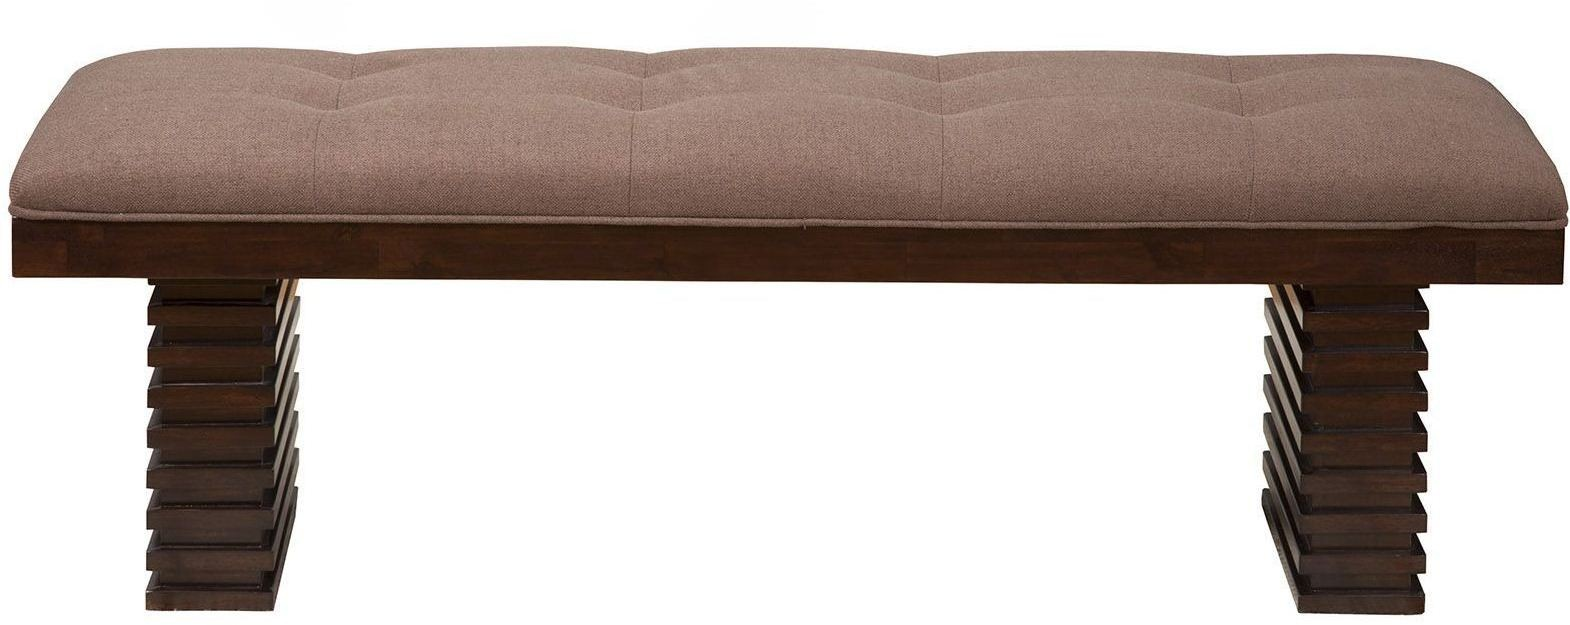 Trulinea Dark Espresso Upholstered Dining Bench From Alpine Coleman Furniture